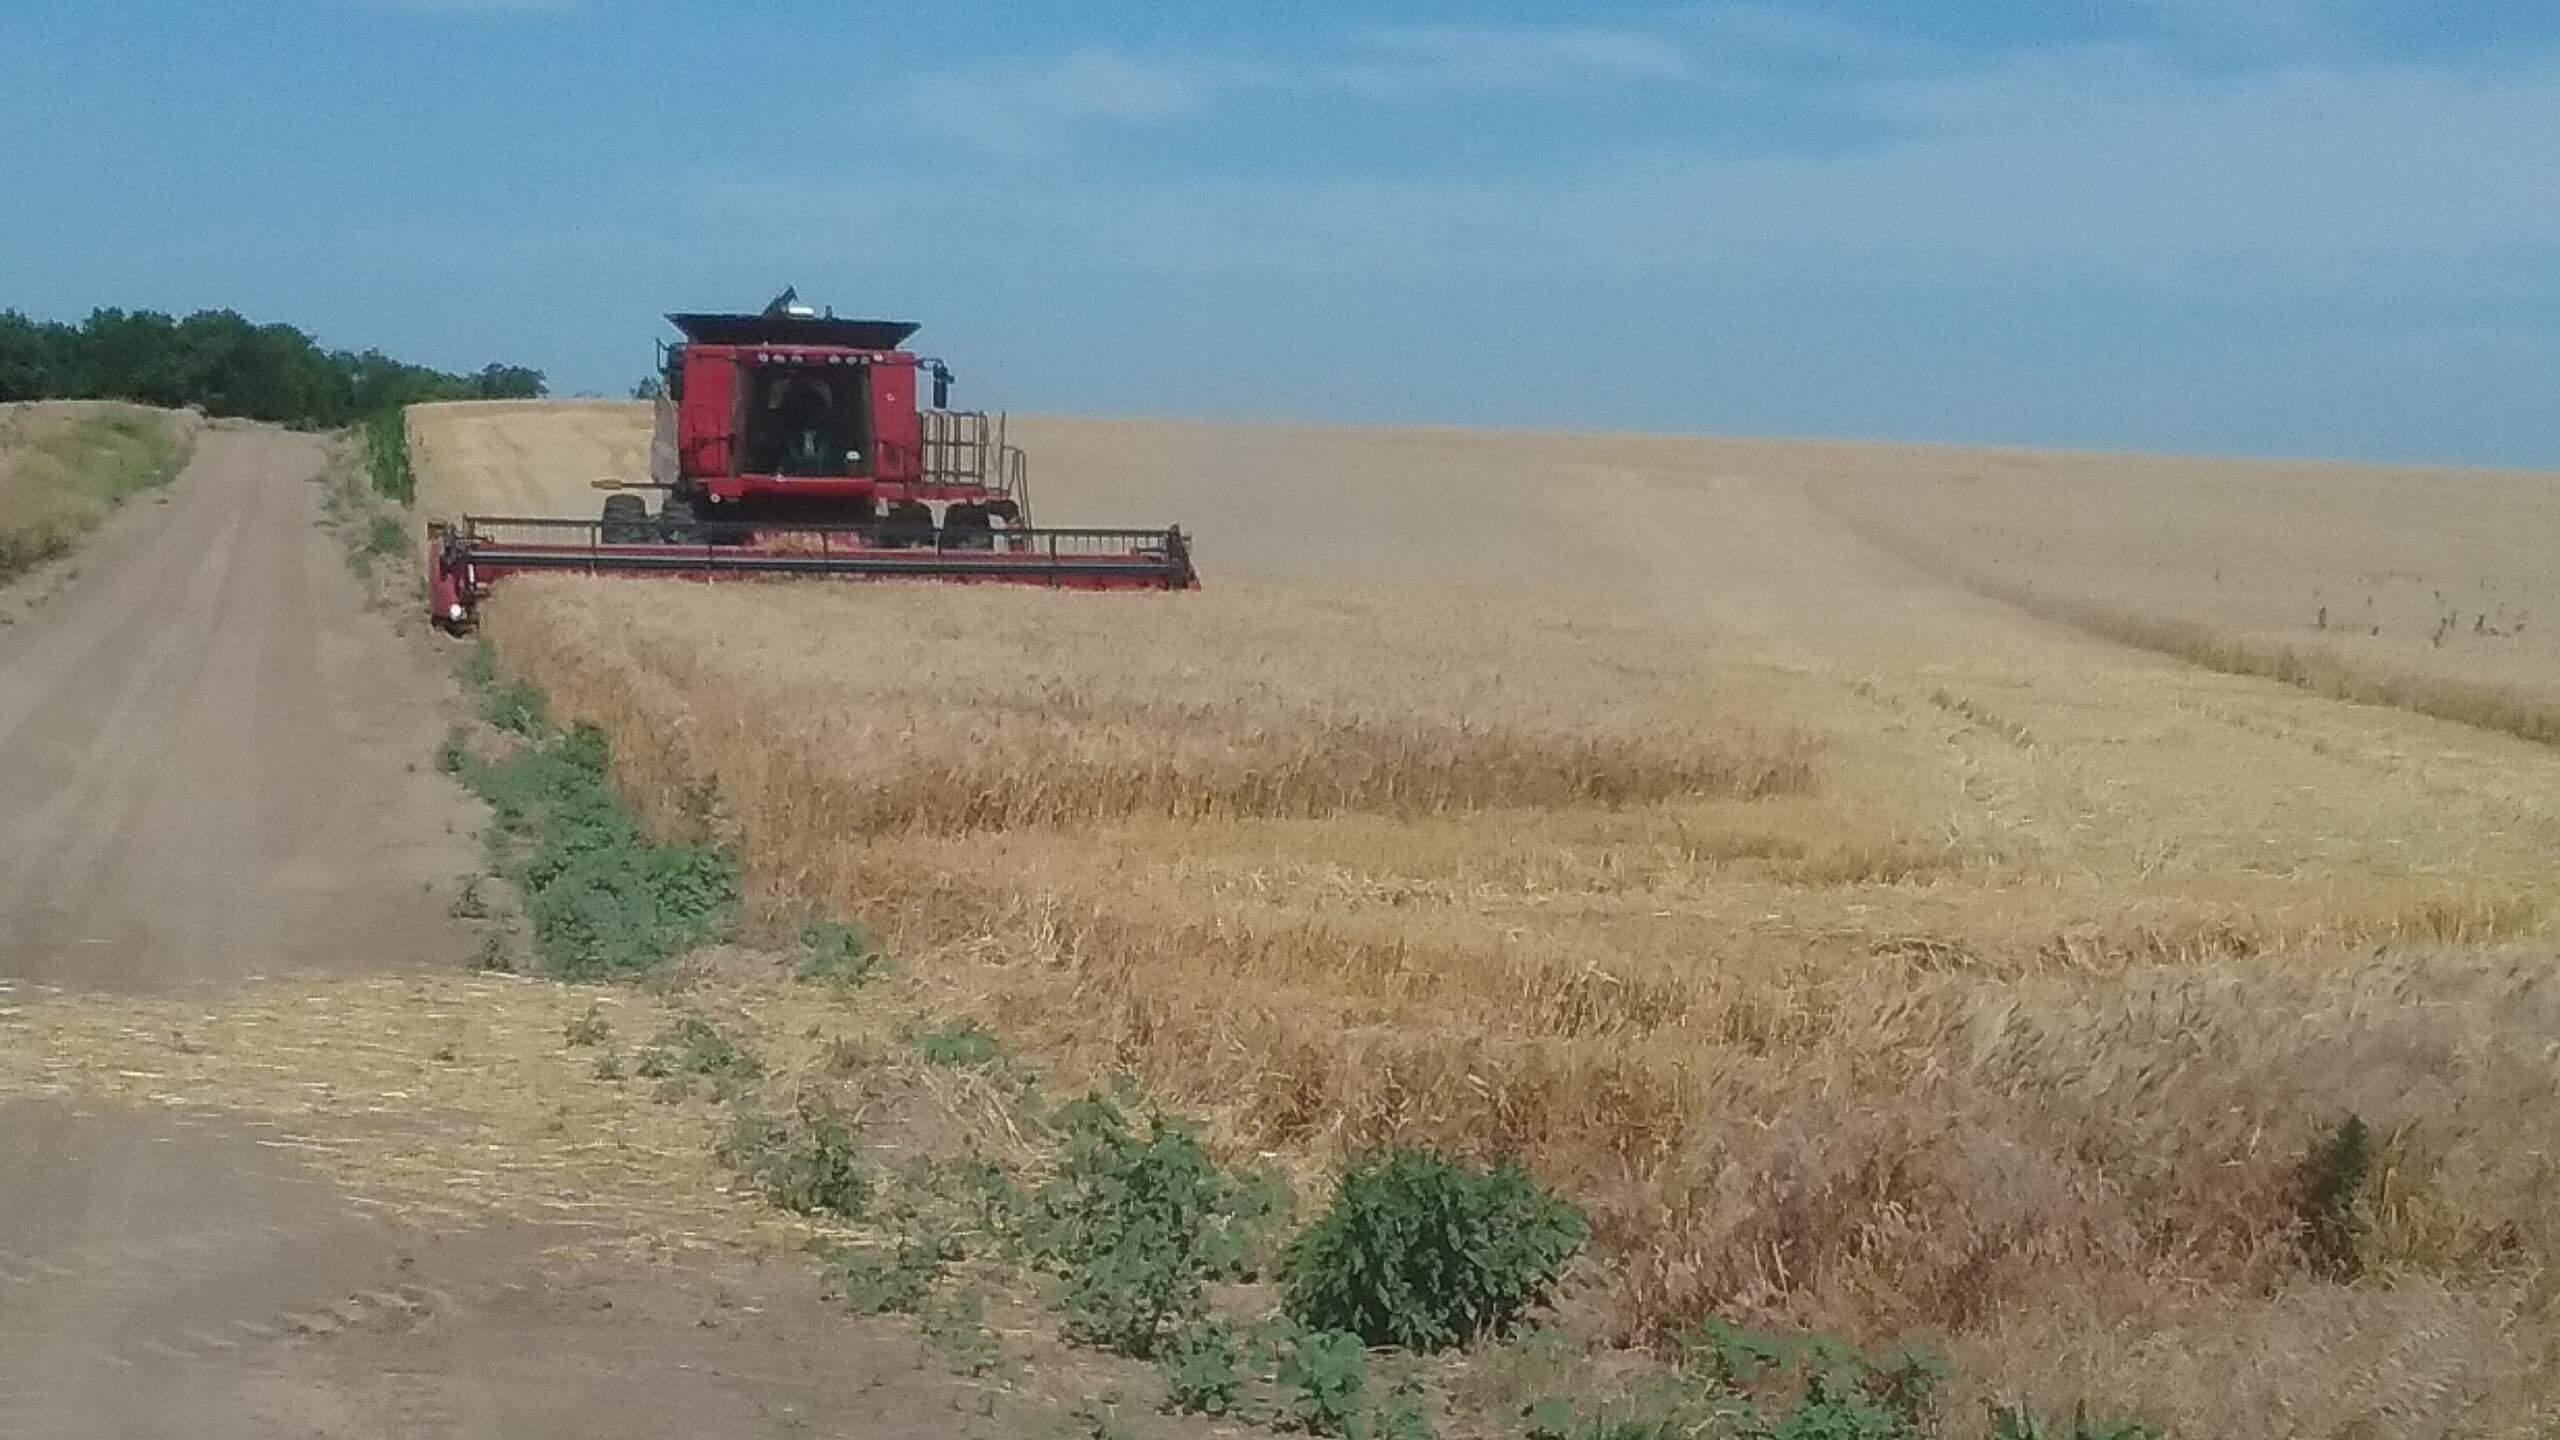 combine harvesting a wheat field in kansas